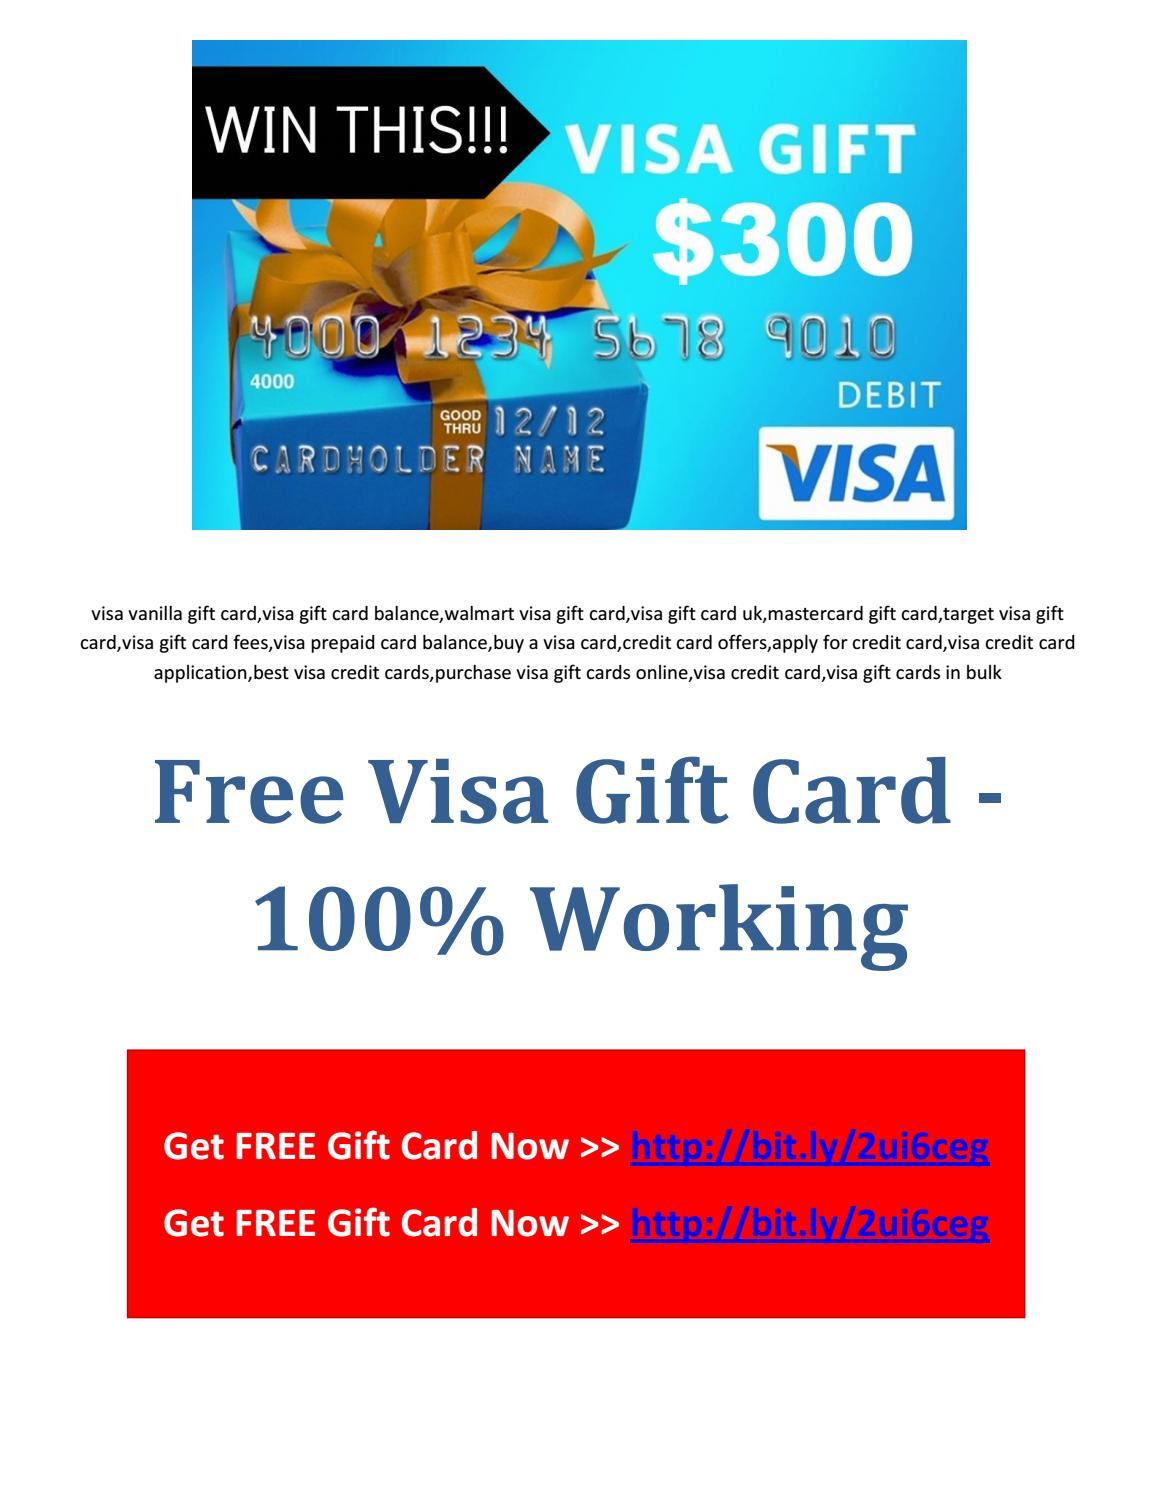 Free Visa Gift Card 100% Working by Charitable Organization